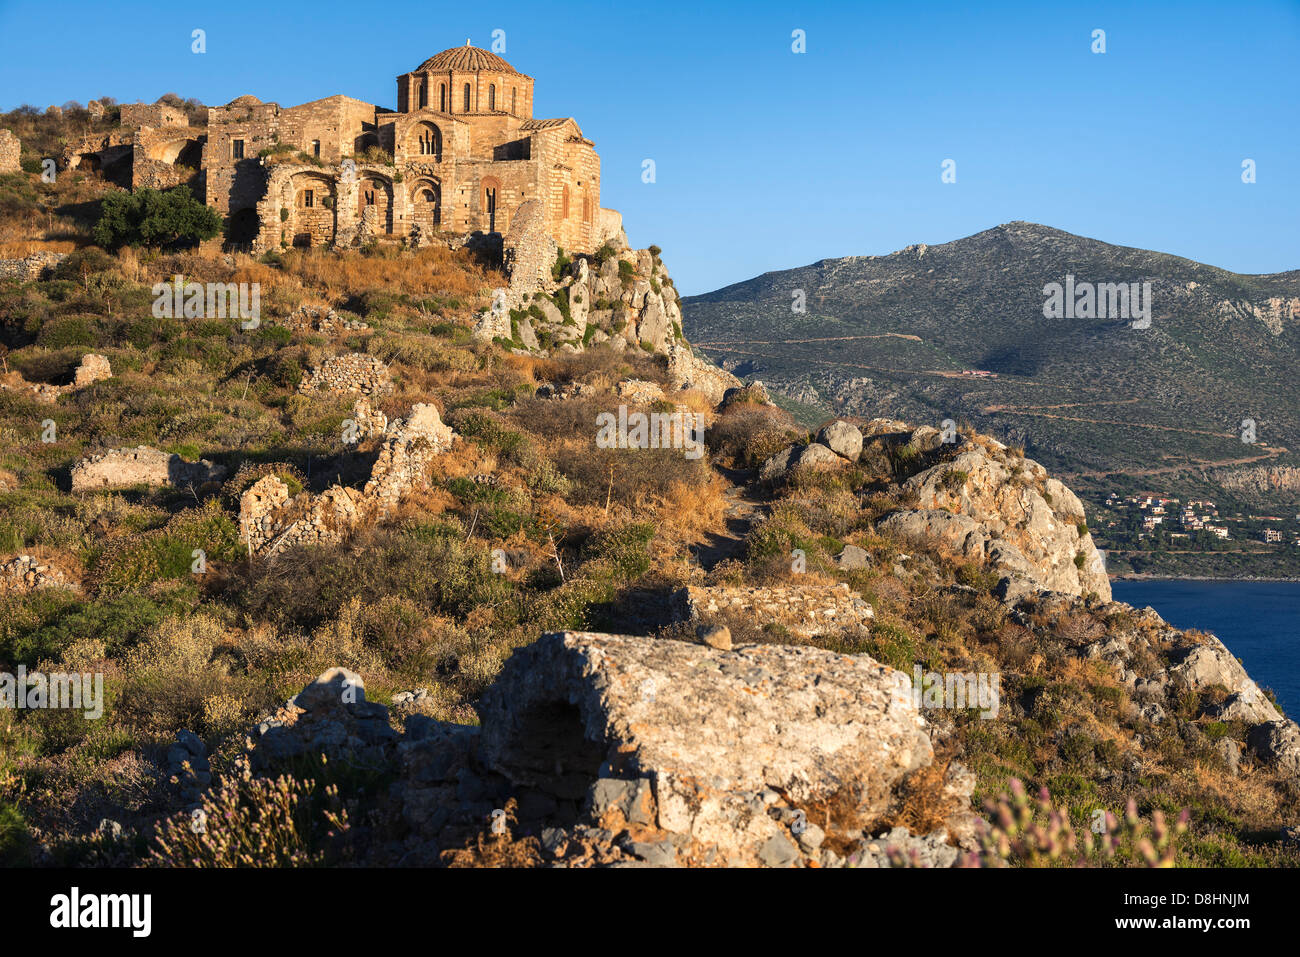 Agia Sofia church and the ruined citadel above the old Byzantine town of Monemvasia, in Lakonia, Southern Peloponnese, Stock Photo